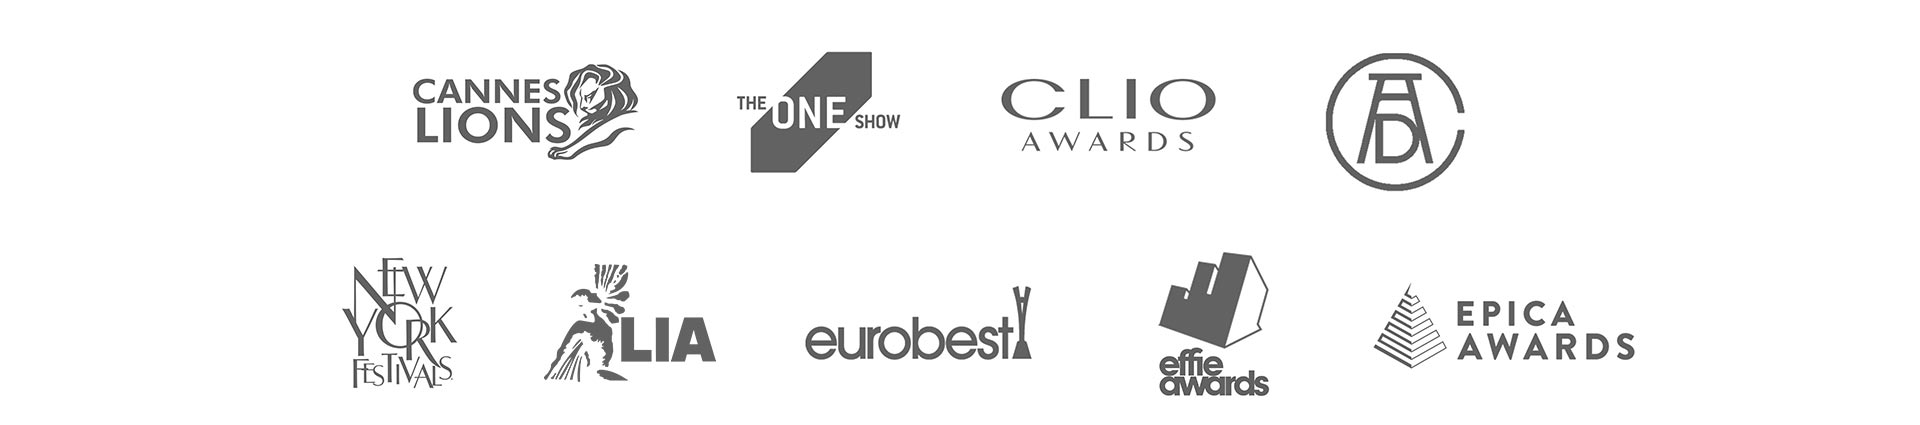 logos-awards-and-recognition.jpg